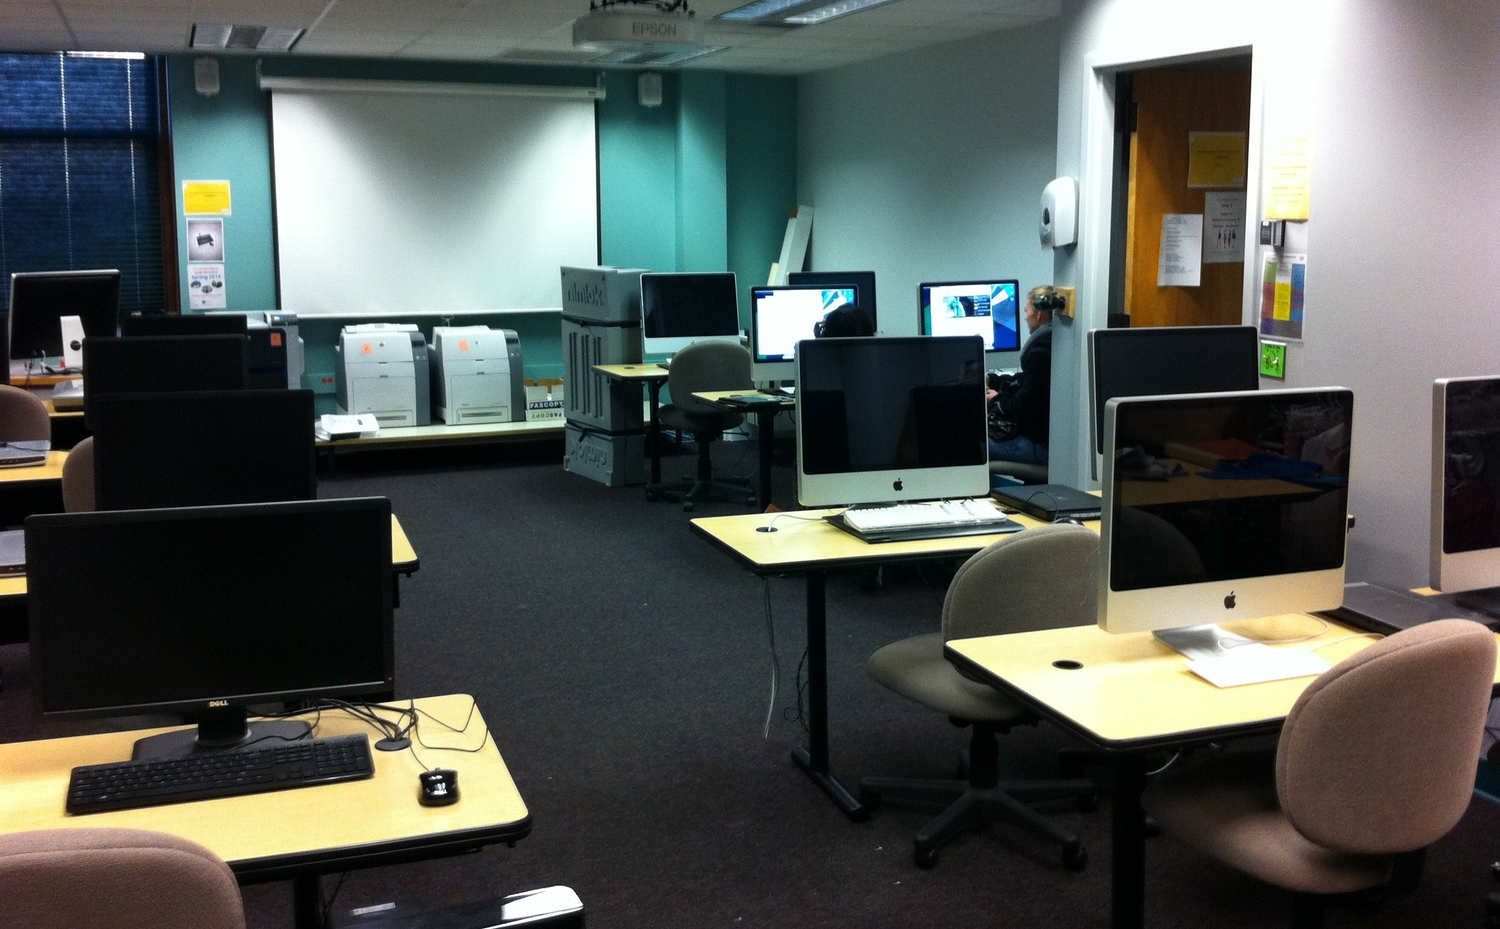 CAD Lab... Not only did I work here in school but also had many classes now I got to teach one!